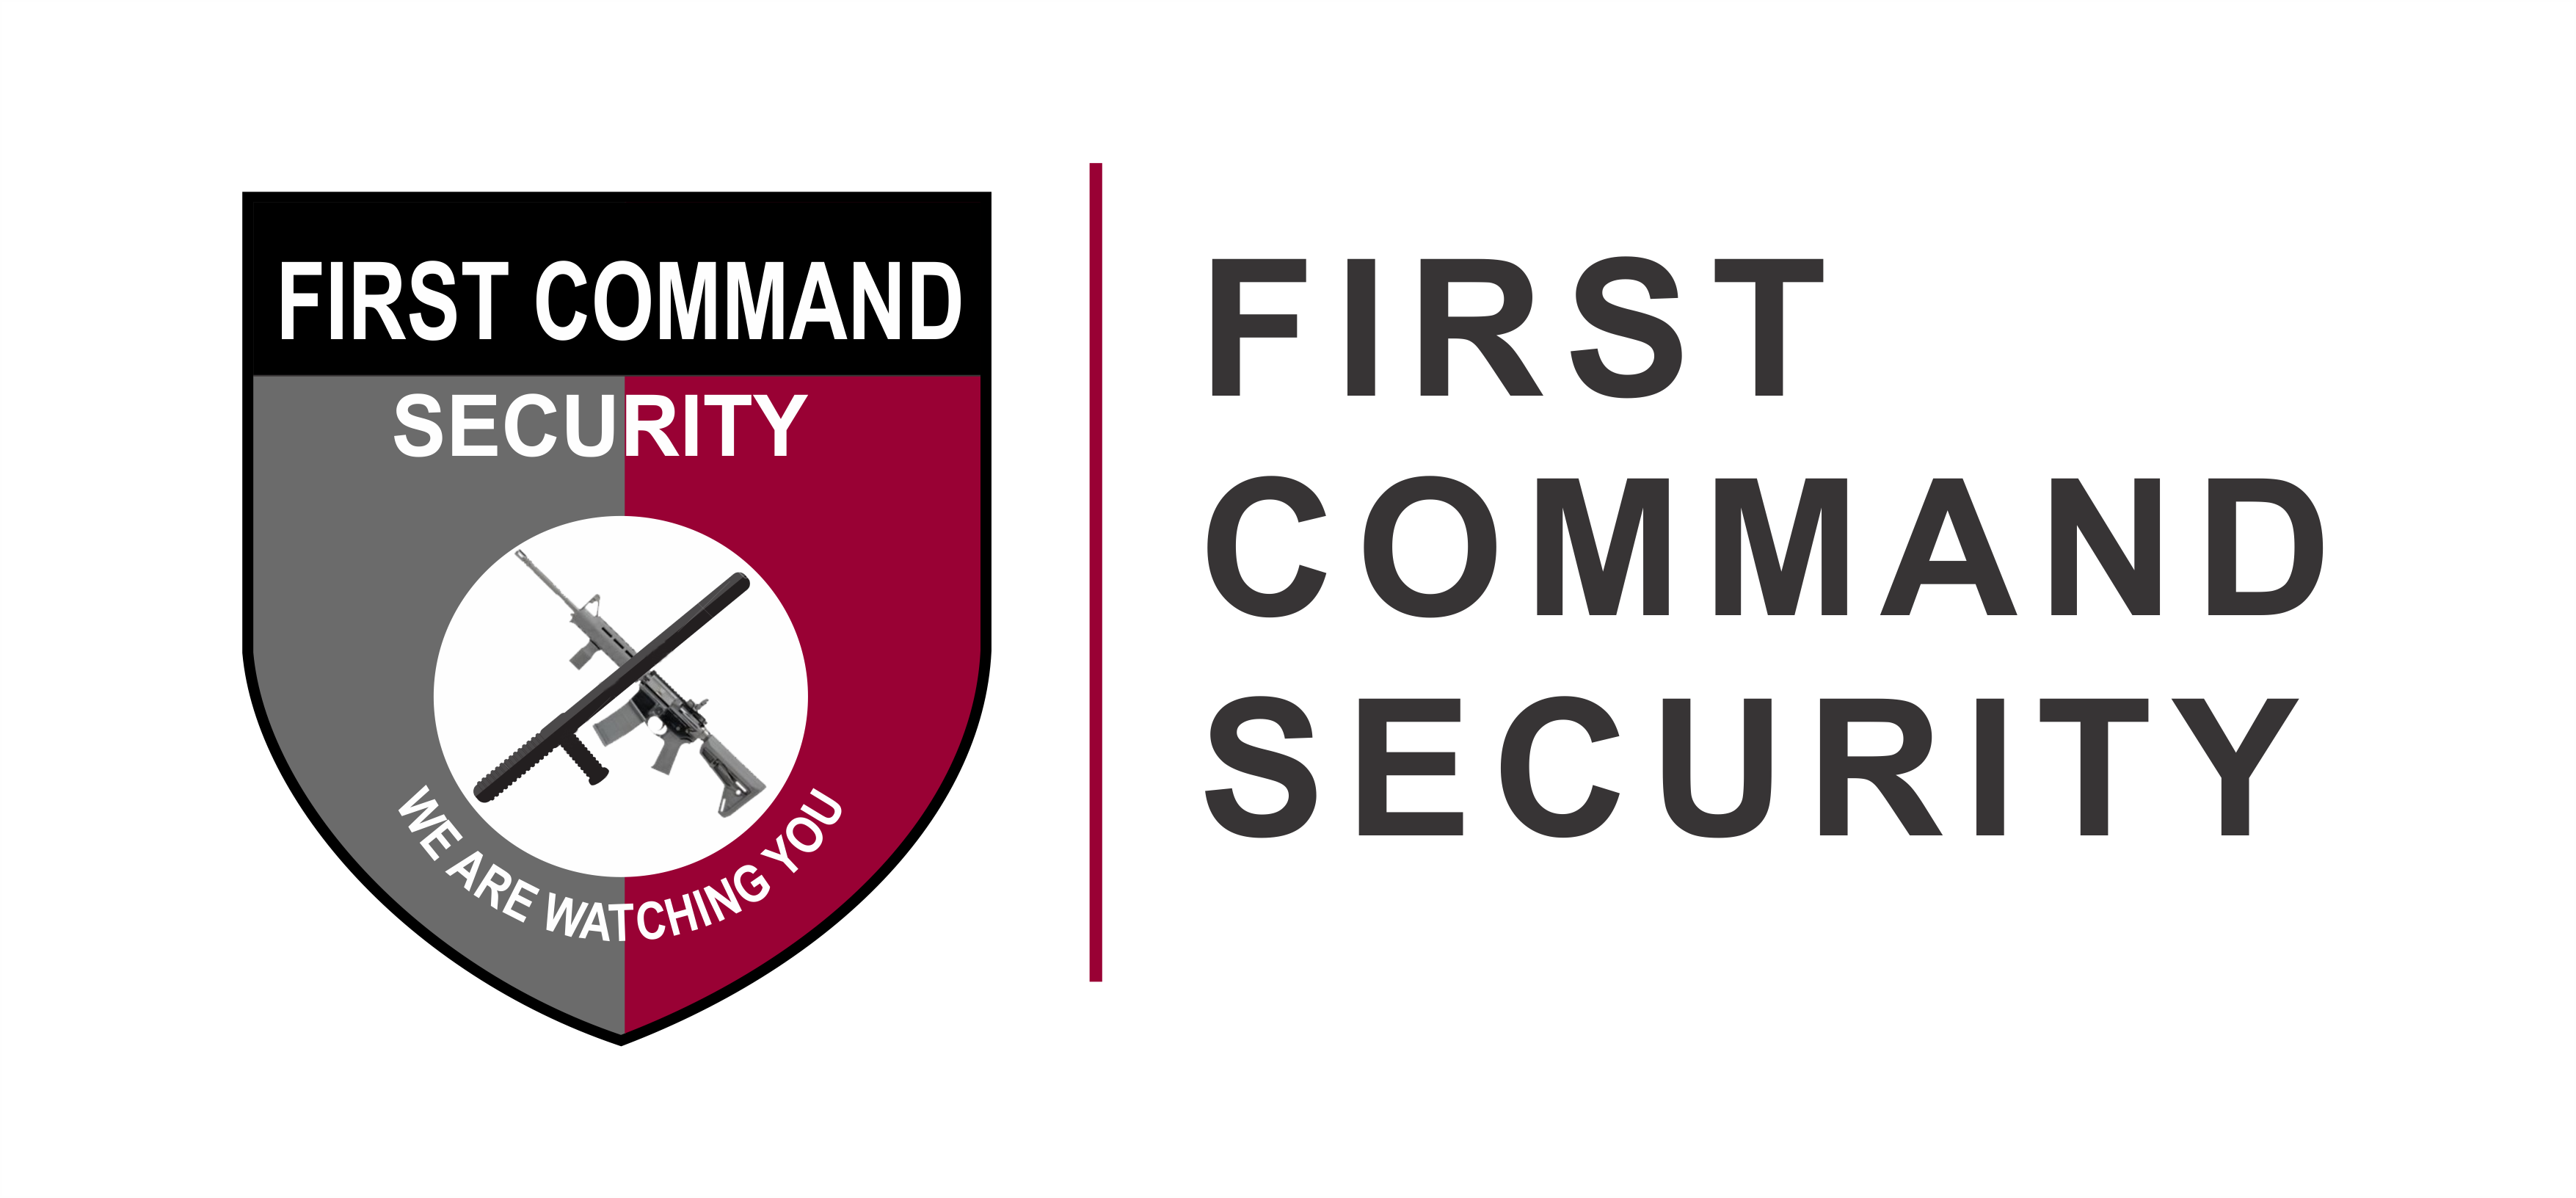 First Command Security